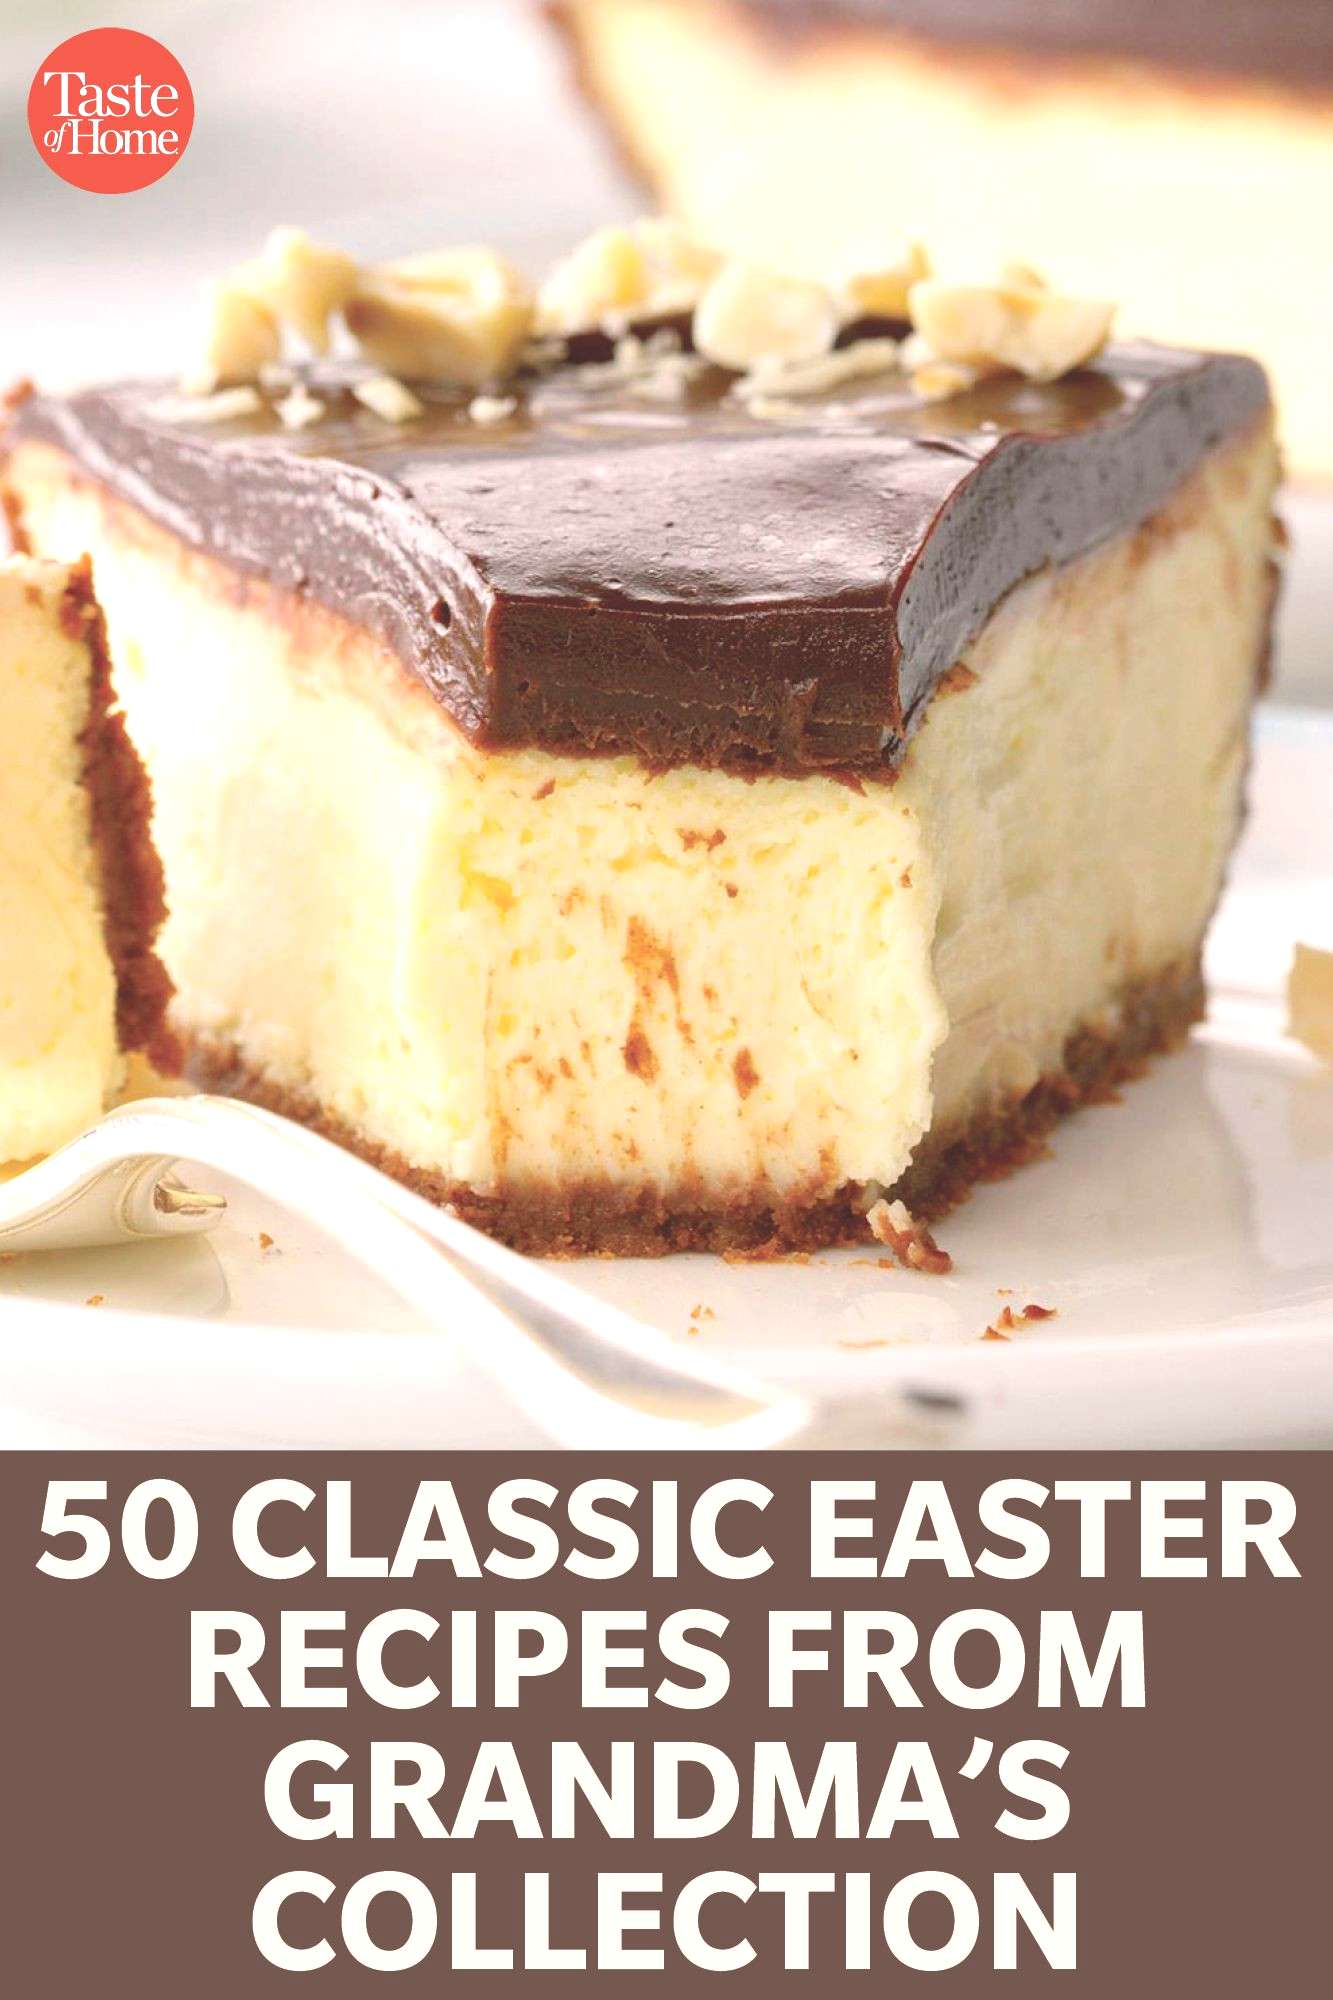 50 Classic Easter Recipes from Grandma's Collection 50 Classic Easter Recipes from Grandma's Co